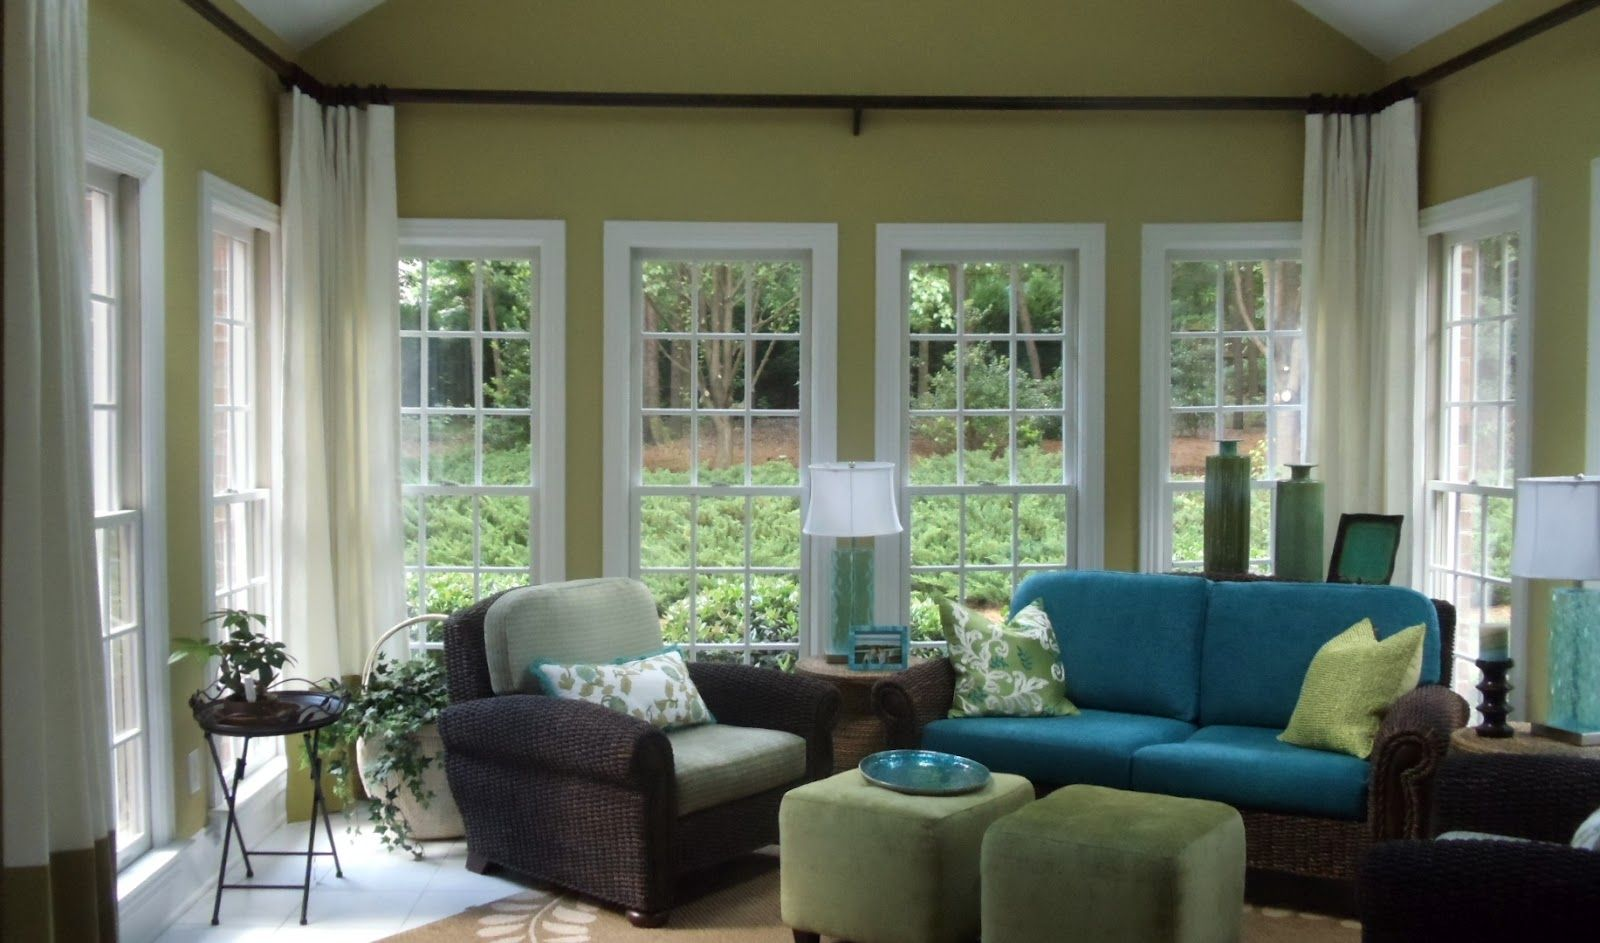 sunroom makeover on my list love the higher curtain interior sun room curtain idea interior amusing sunroom interior design ideas inspiring creativity modern sunroom interior design ideas with window treatments